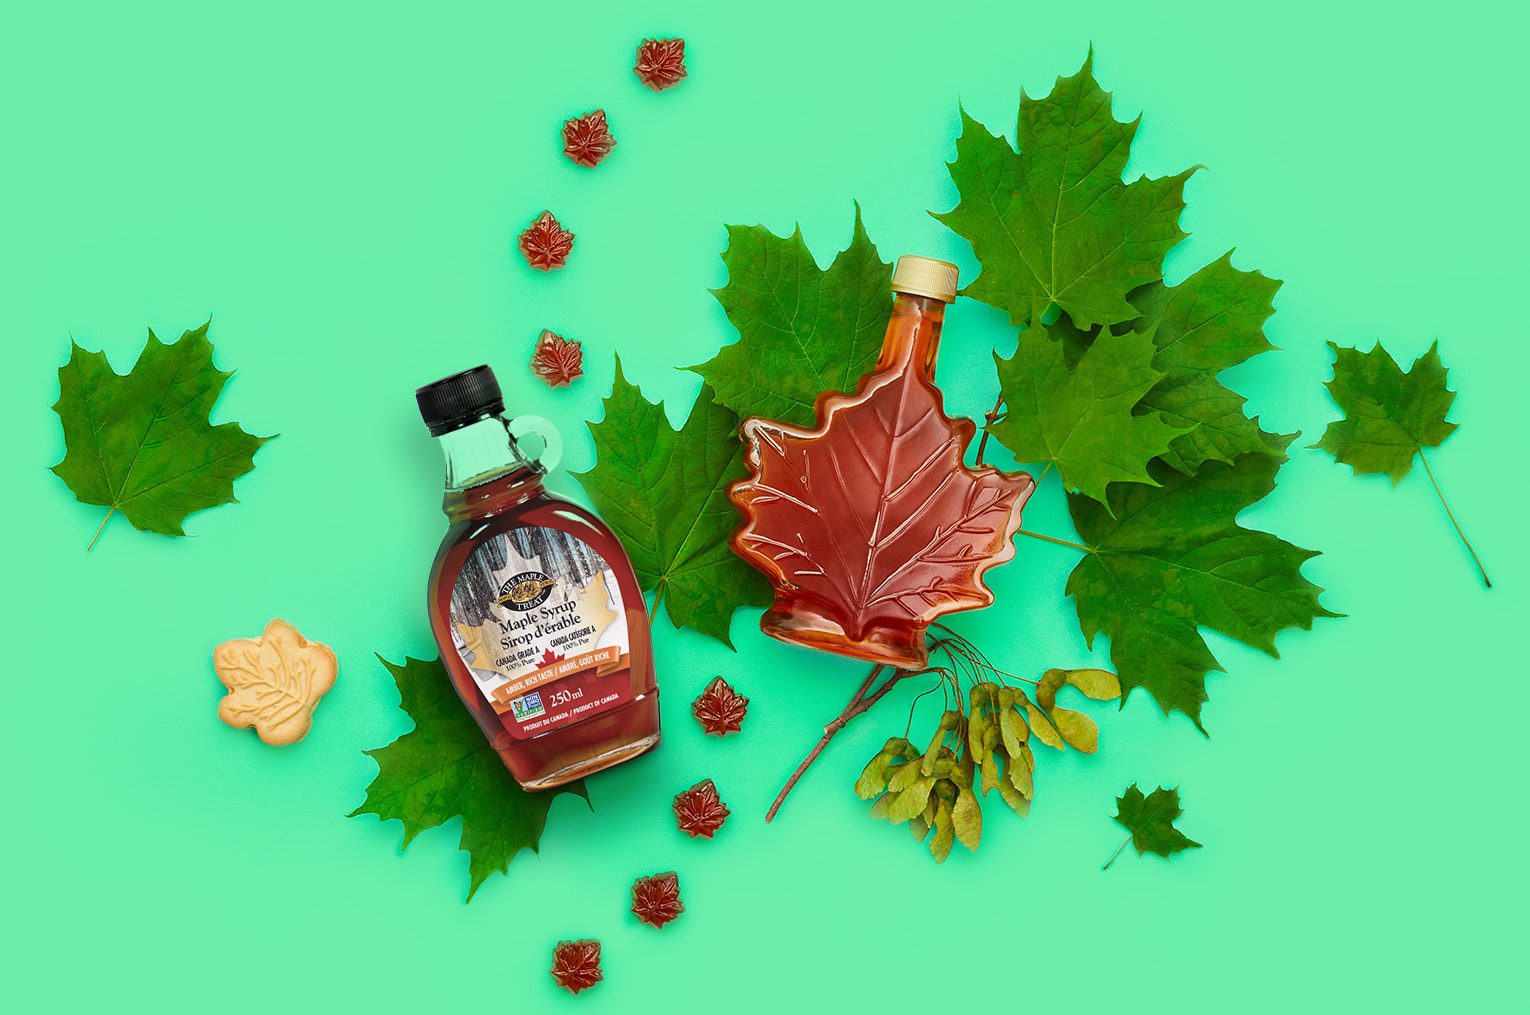 Glass maple syrup bottles against a green background with green maple leaves, maple seeds, maple candies and a cookie.